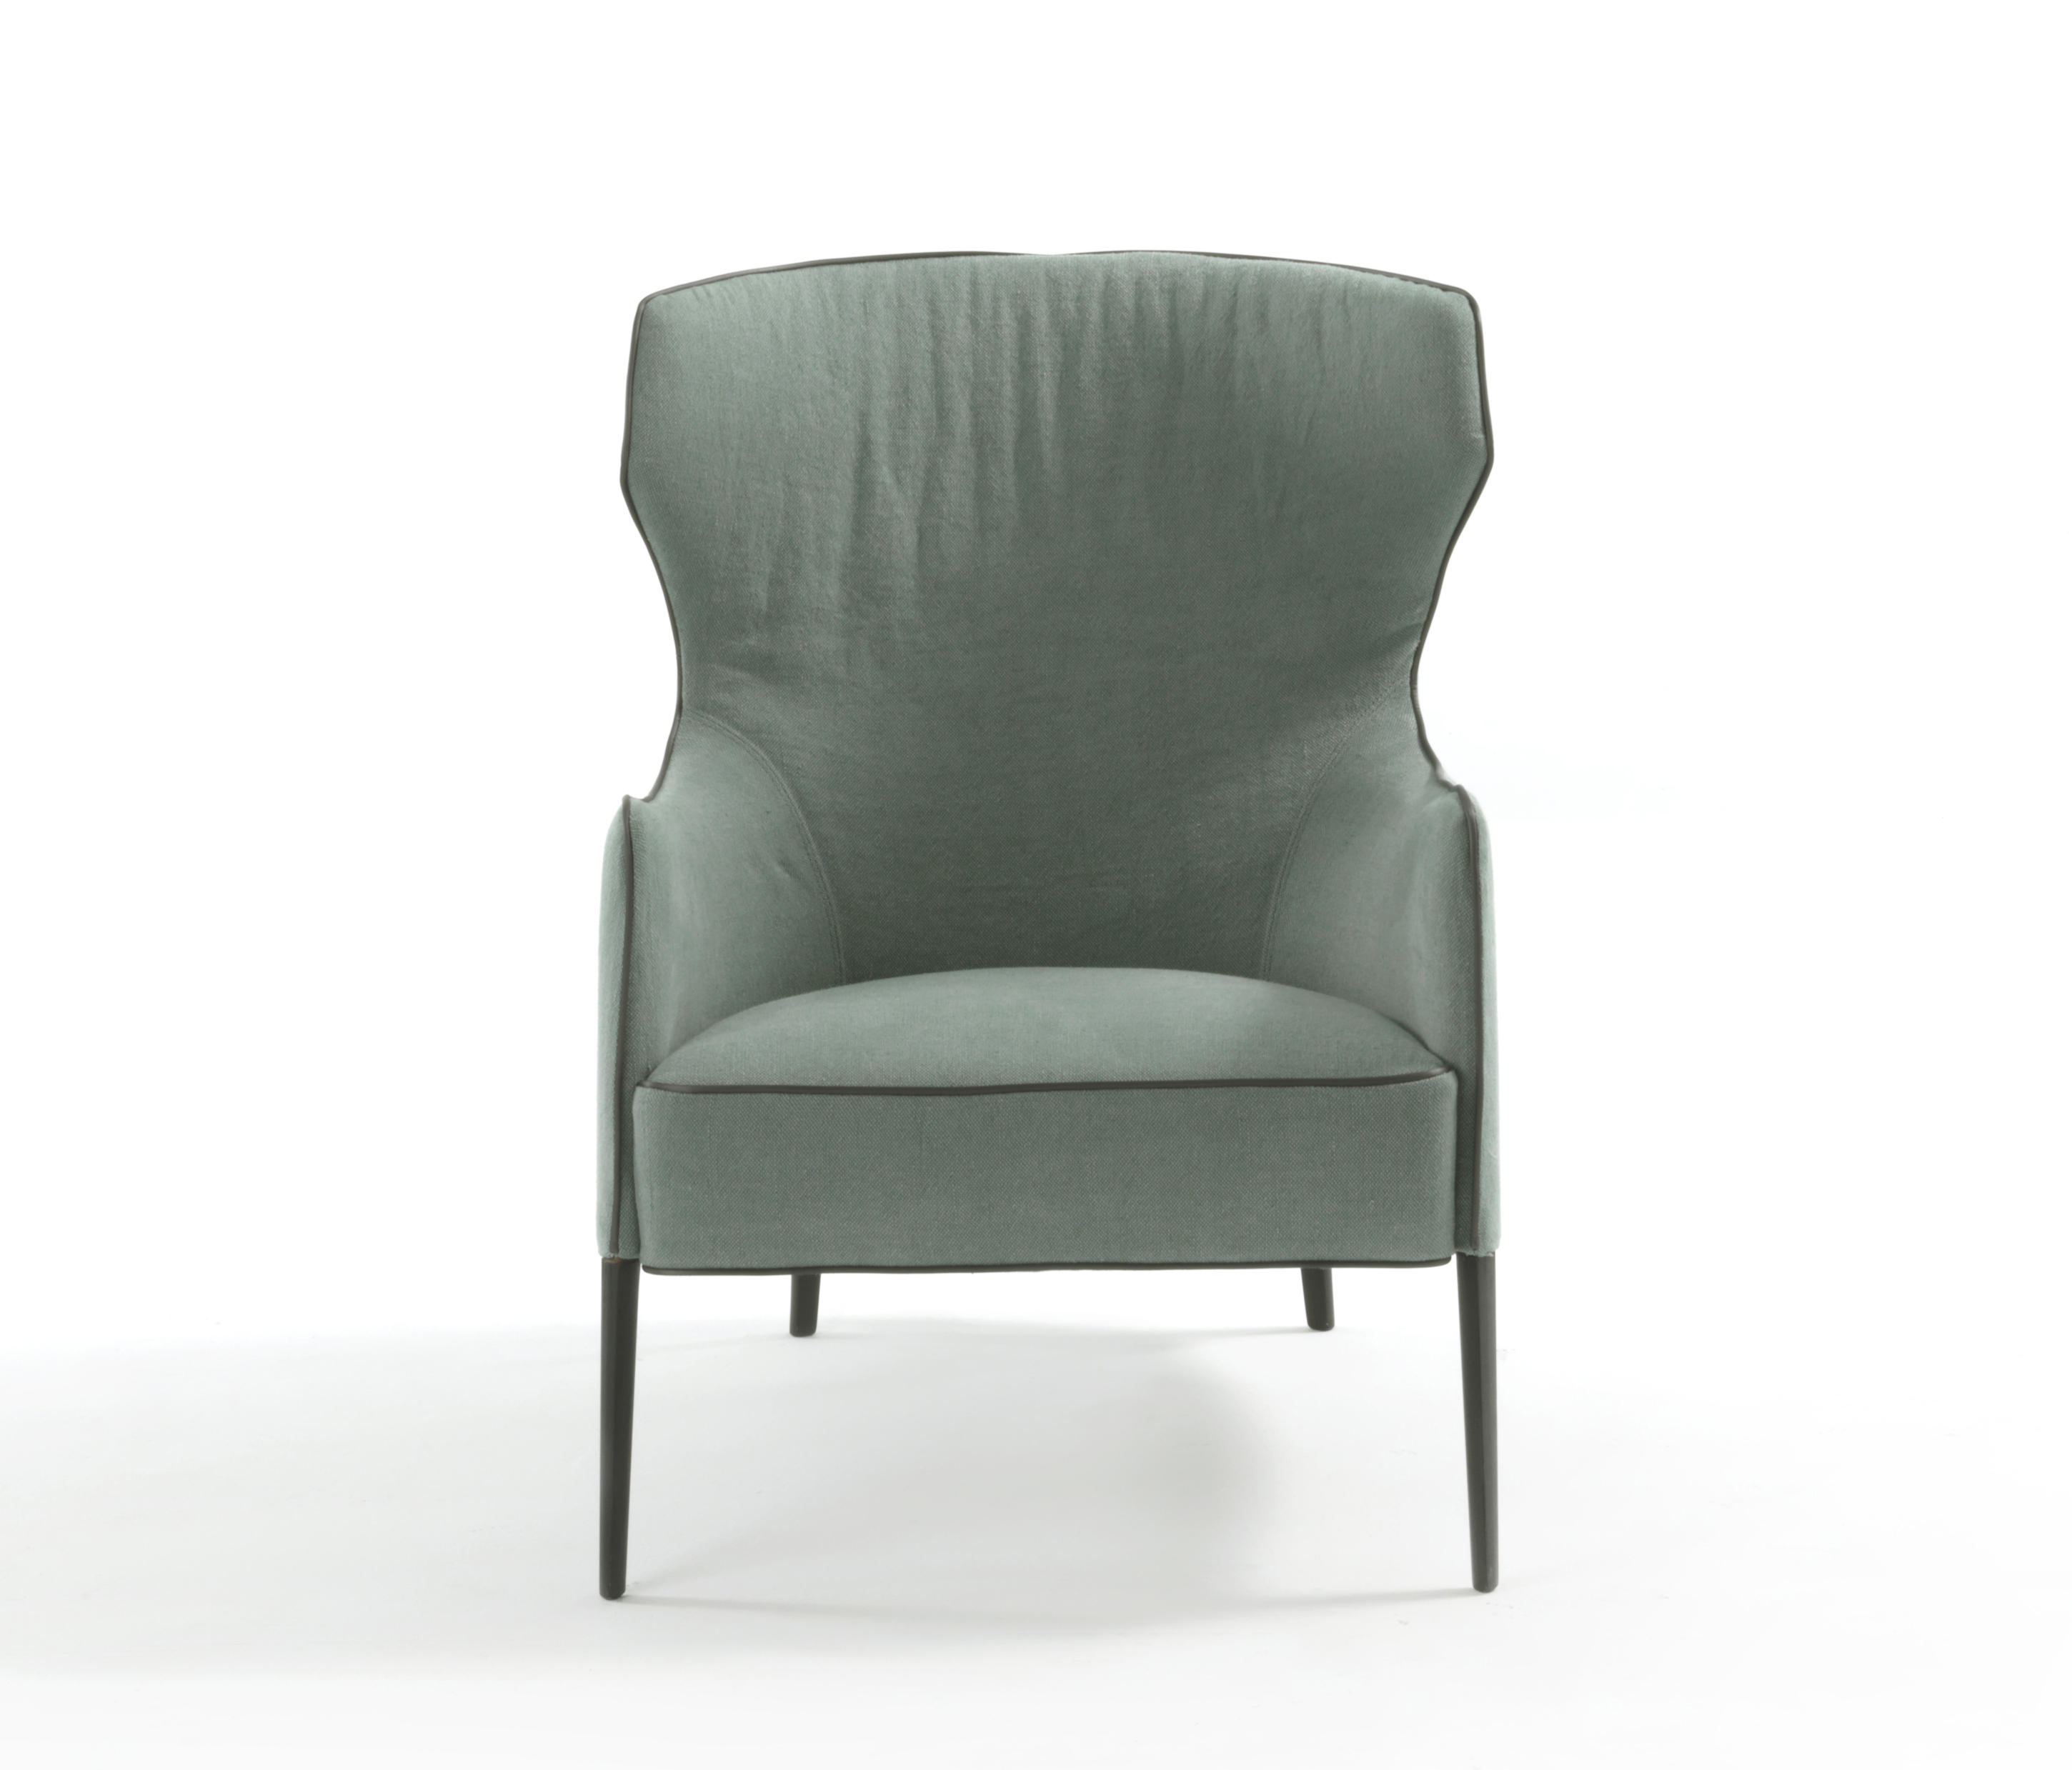 CROSBY BERGÈRE By Frigerio | Armchairs CROSBY BERGÈRE By Frigerio |  Armchairs ...